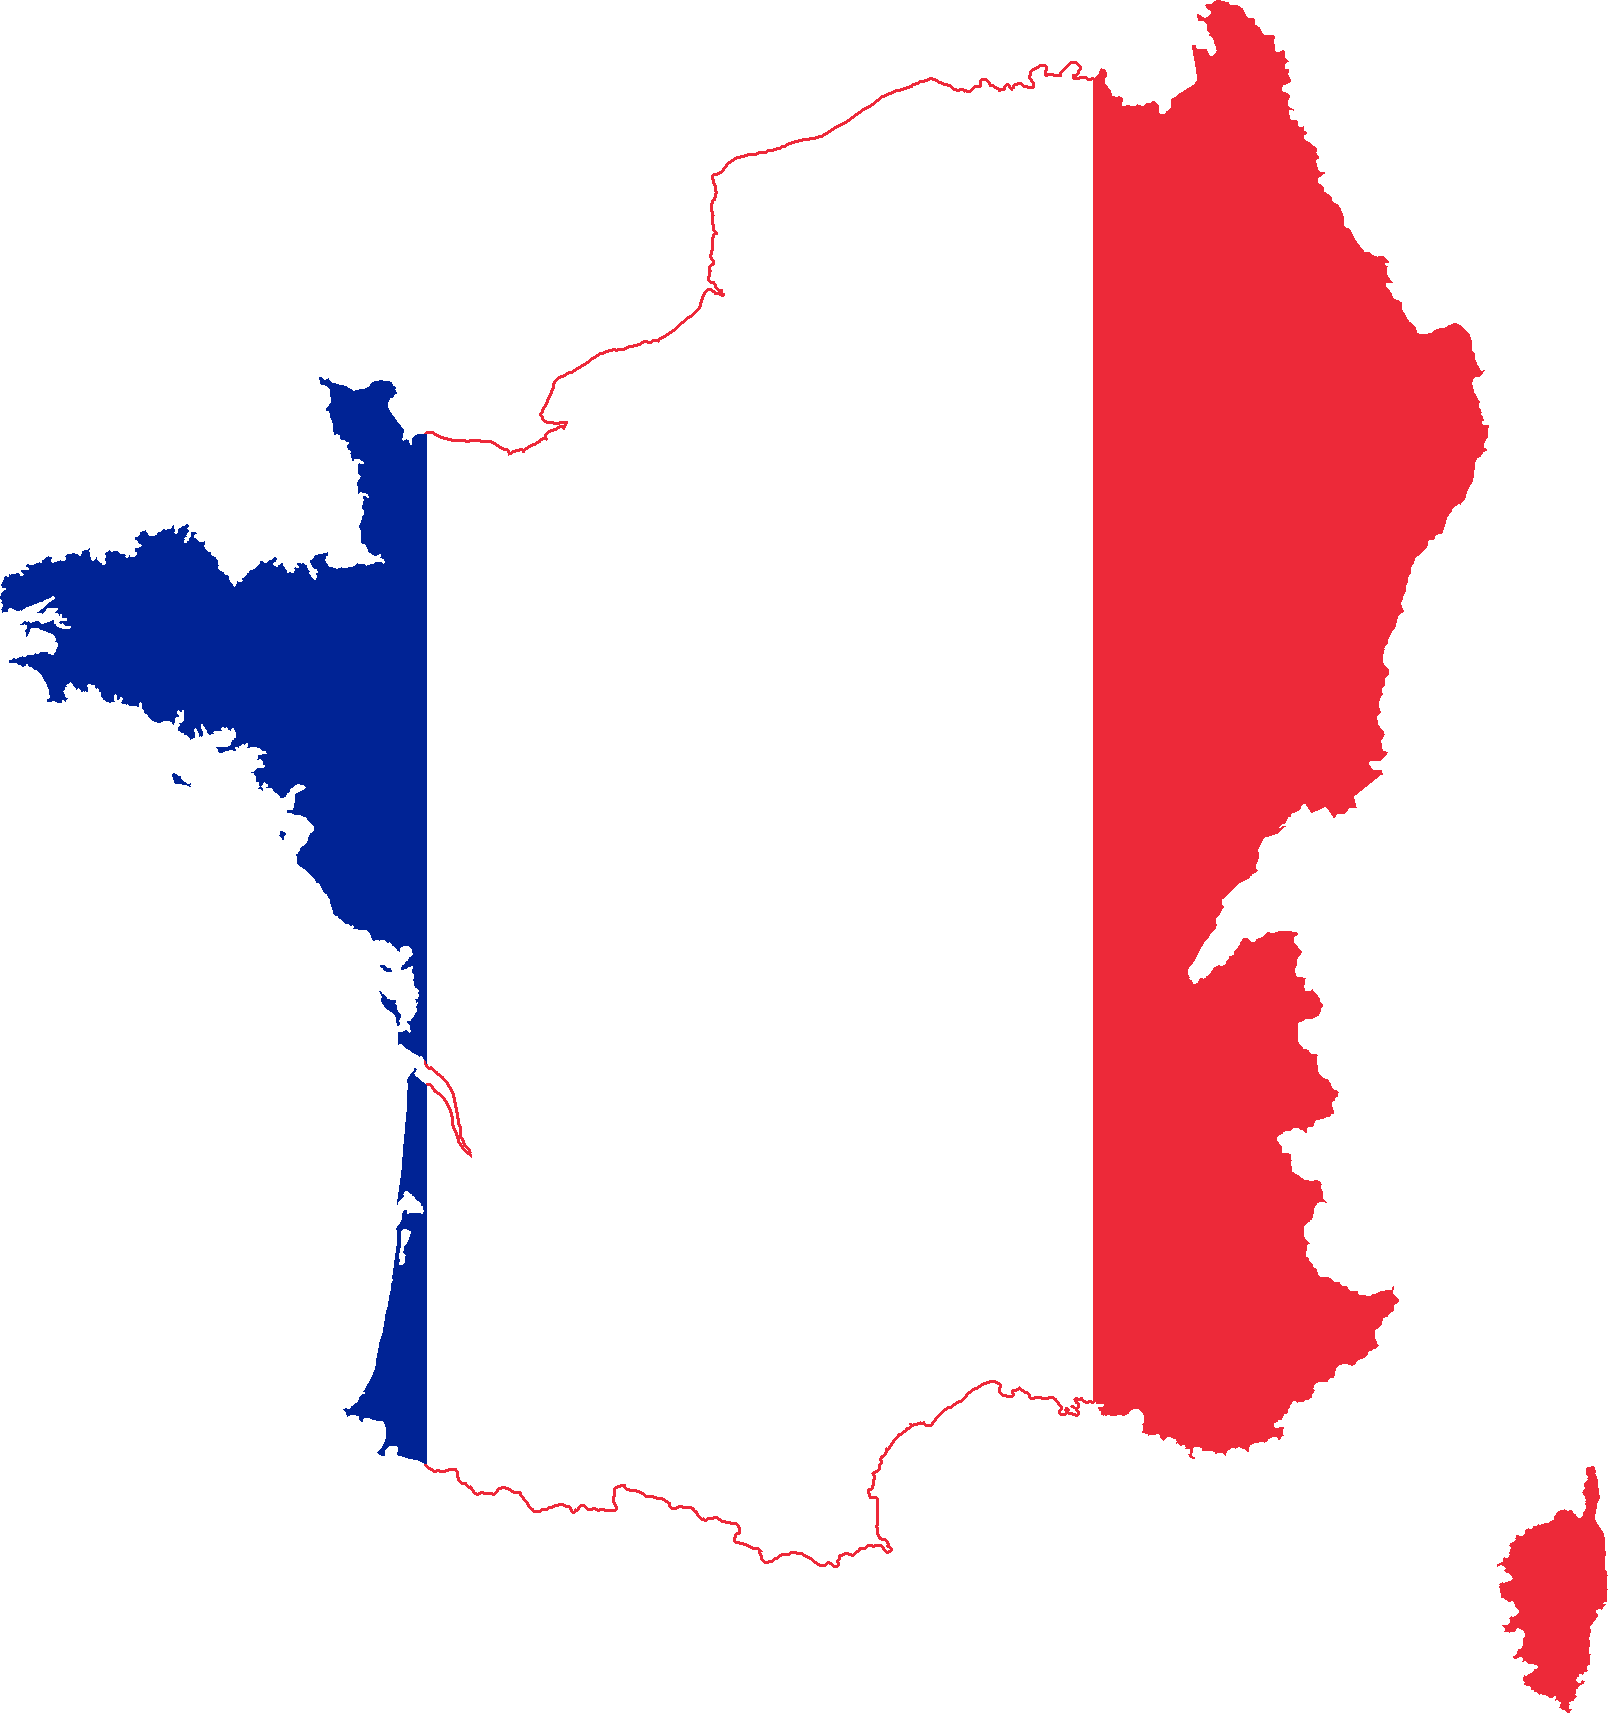 Download Clipart Png French Flag image #29338